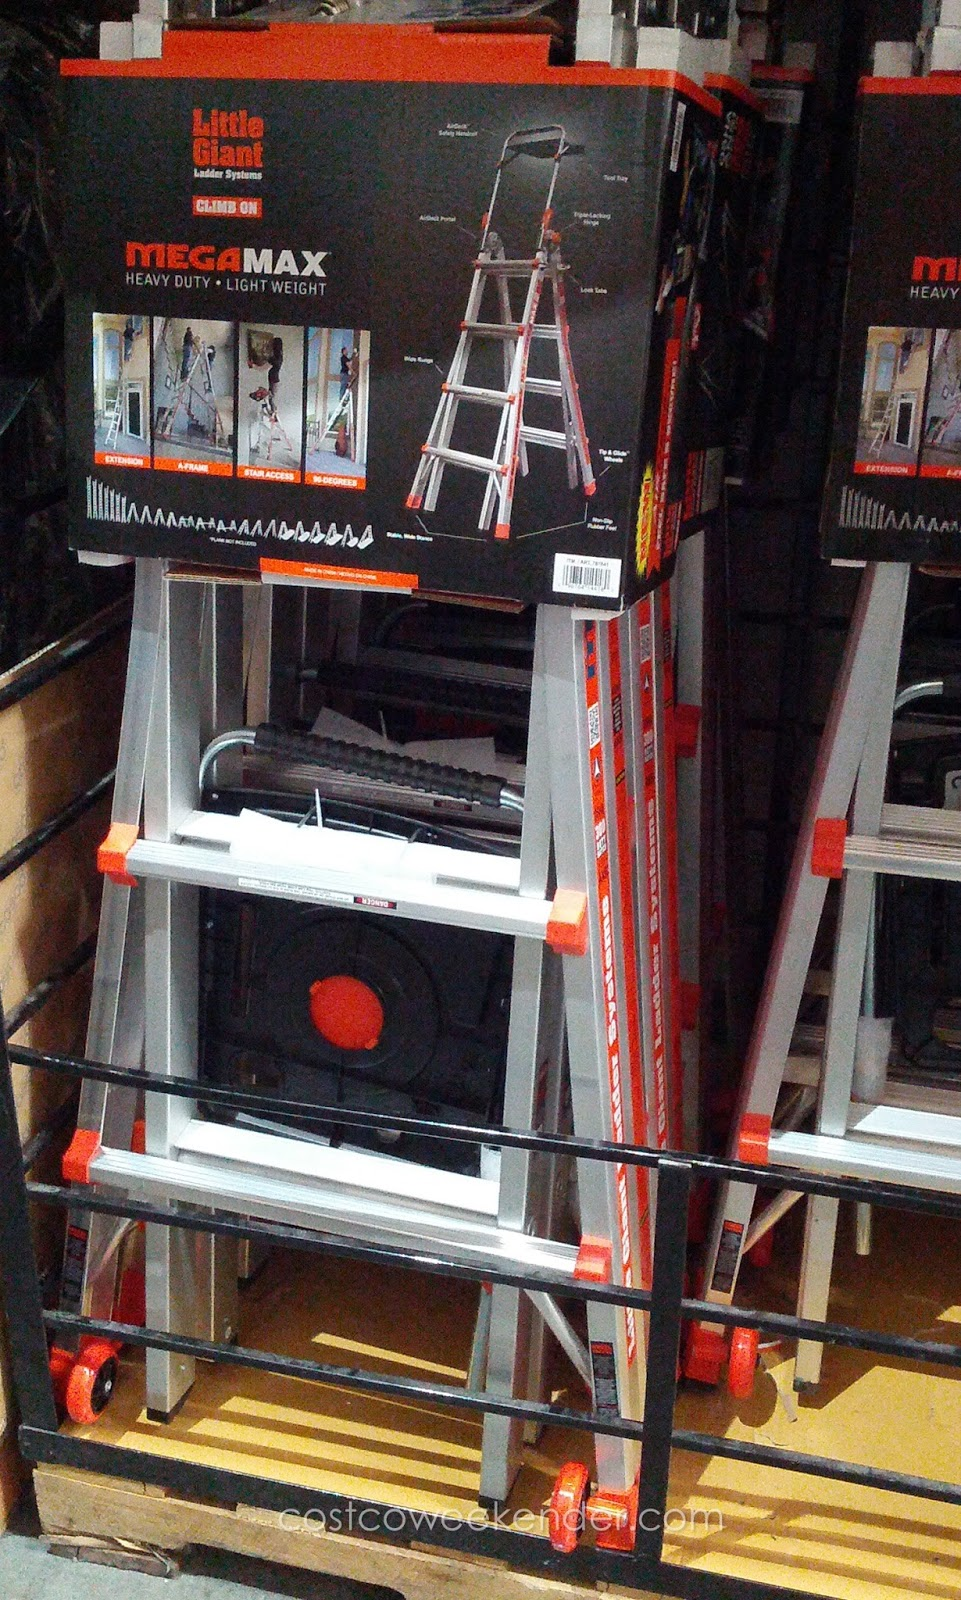 Little Giant Megamax M17 Aluminum Ladder Costco Weekender